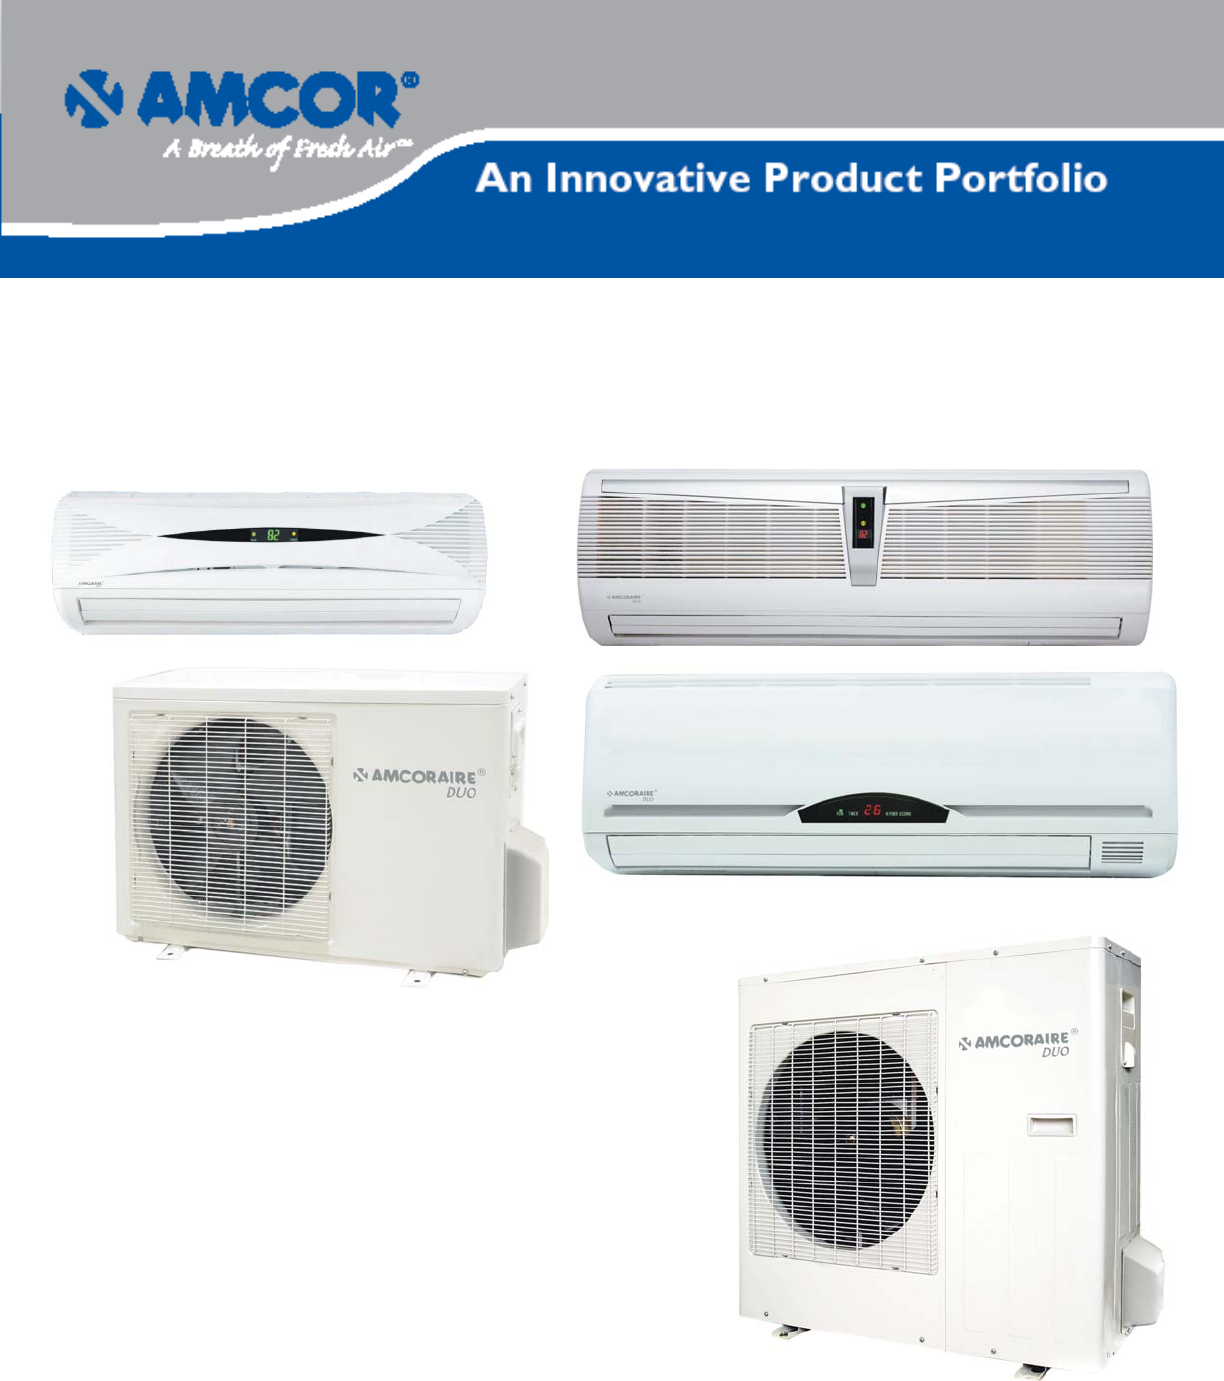 Amcor Air Conditioner UCHW H24AF2 User Guide ManualsOnline.com #0052A2